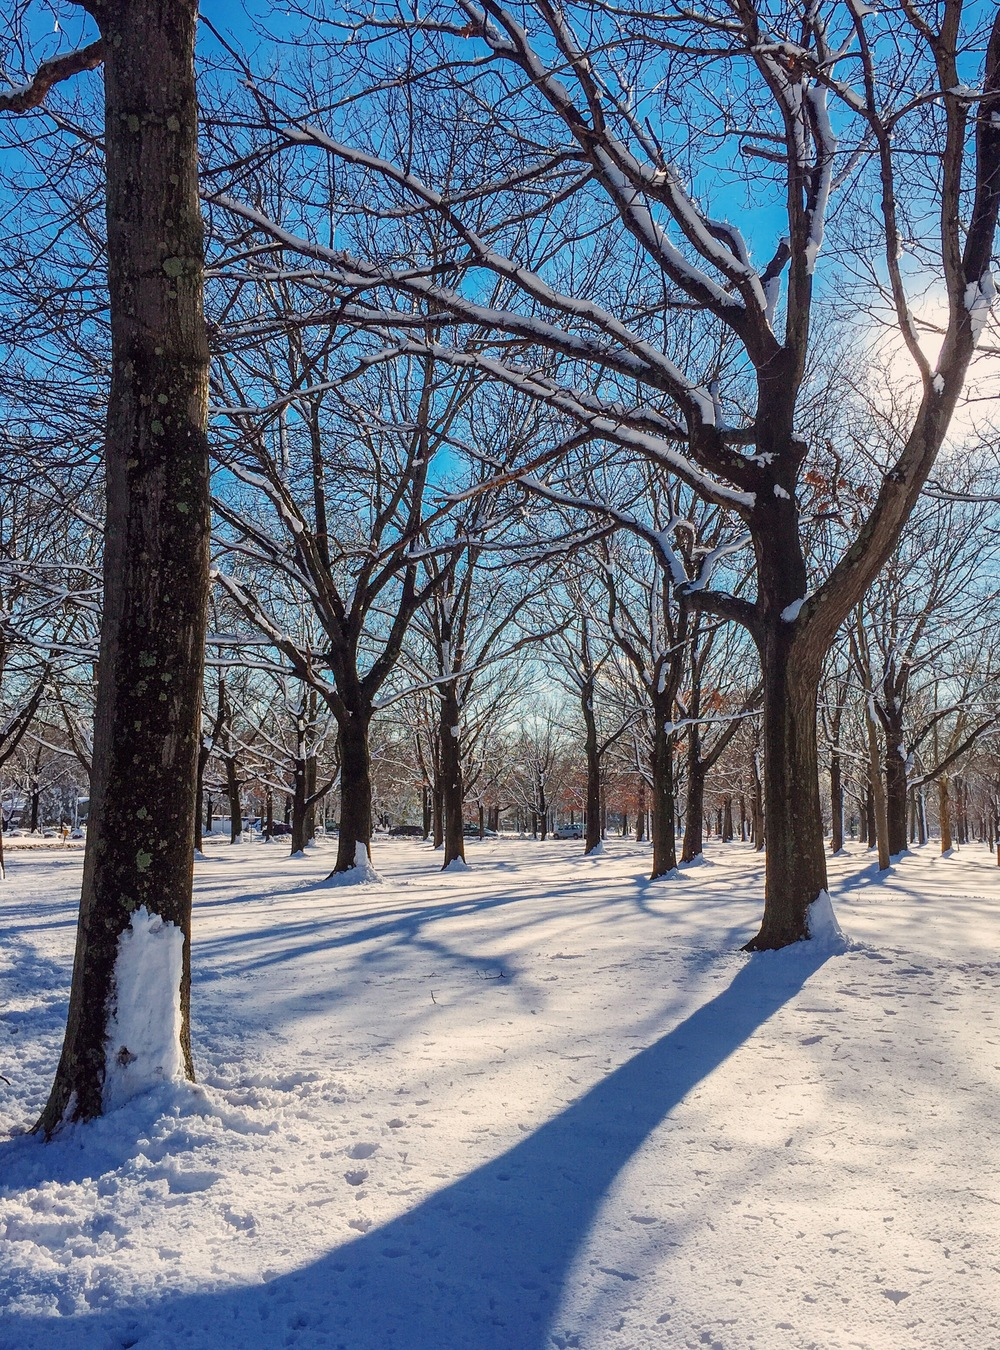 Eisenhower_snow_trees_2.5.16-3_Photo © 2016 Joseph Kellard:kellardmedia.com .JPG